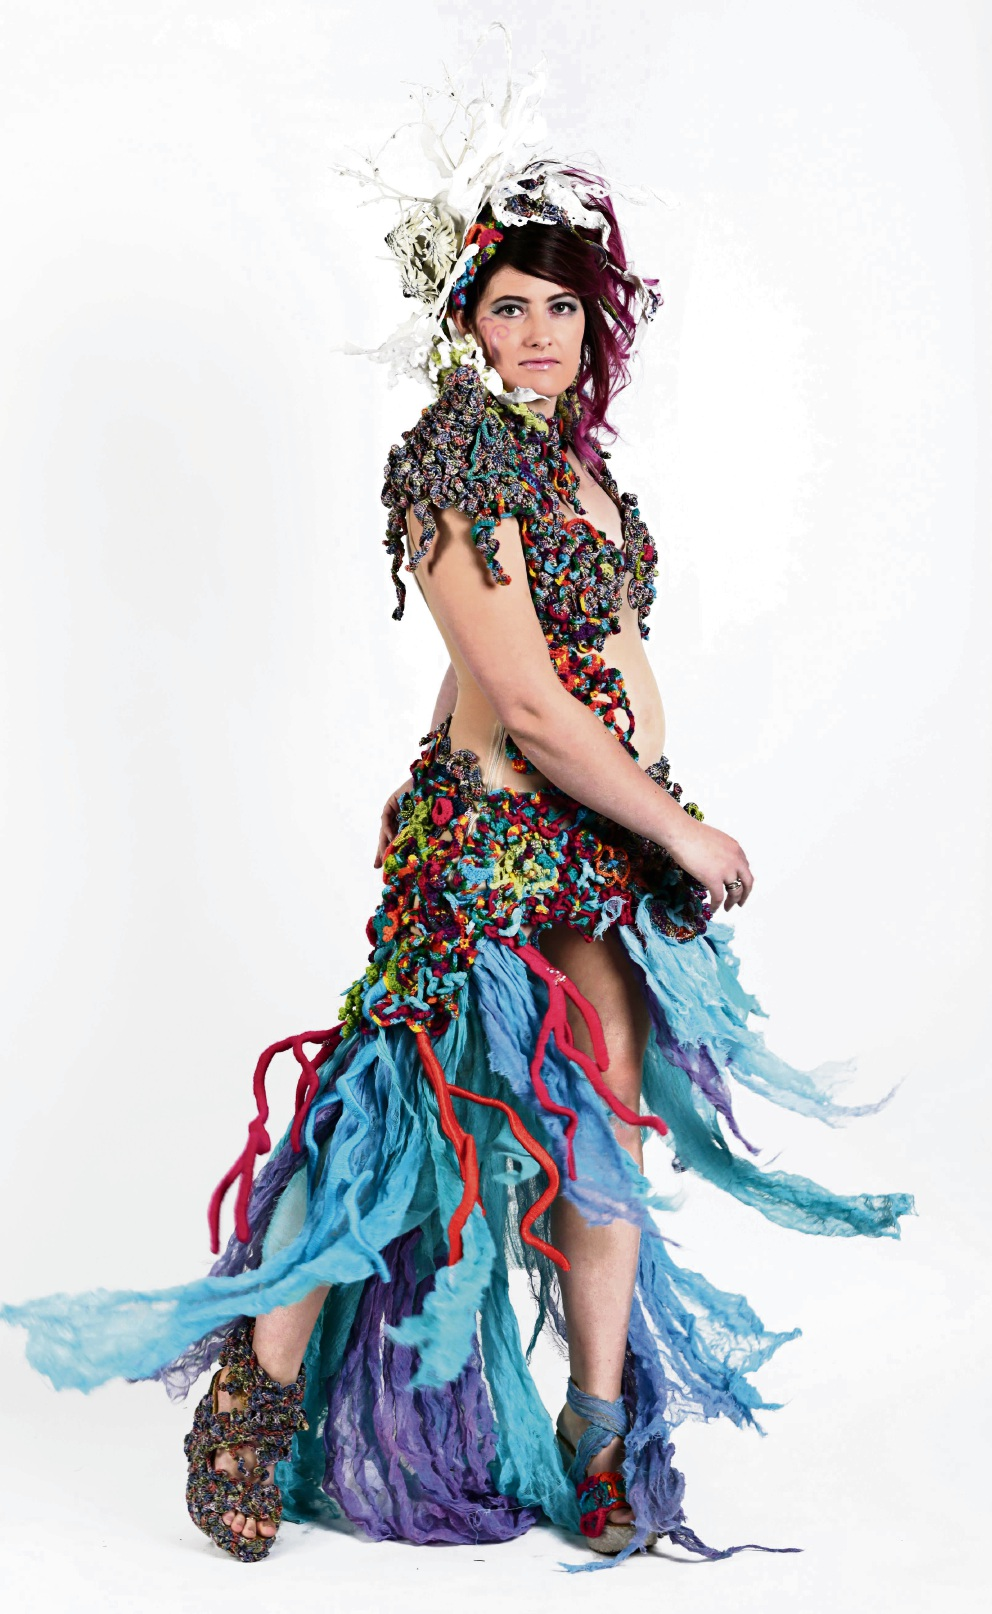 Rockingham artists find inspiration in the sea and flowers for Wearable Art Mandurah pieces